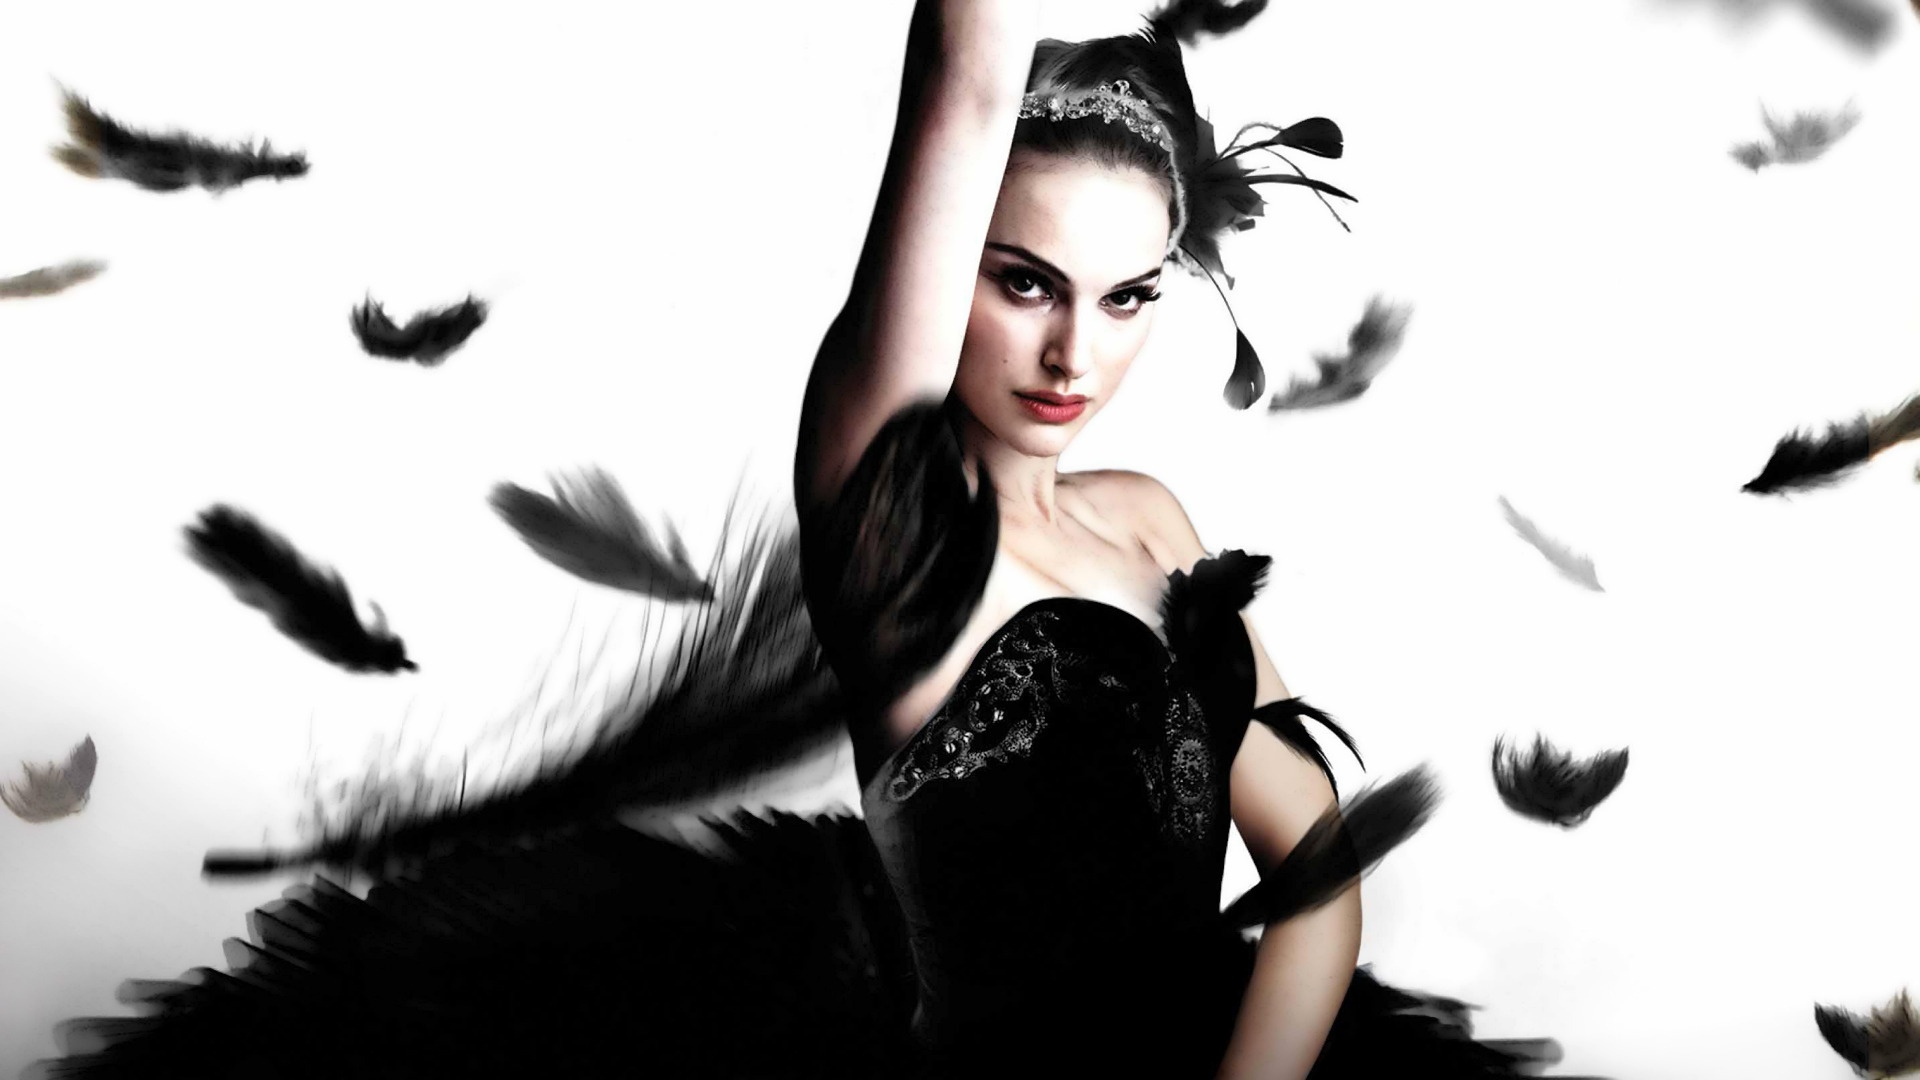 natalie portman wallpapers hd A2